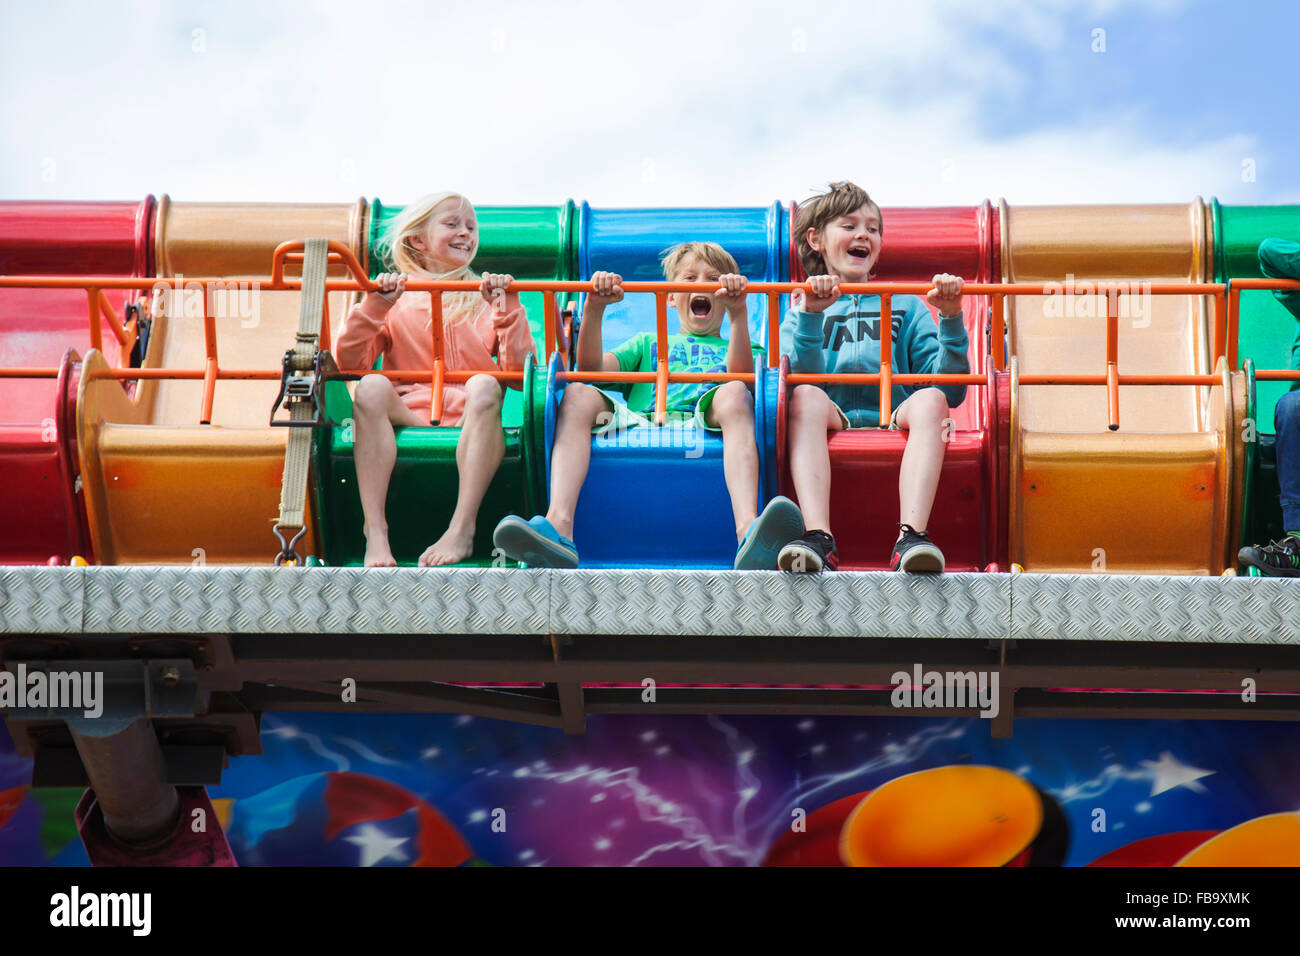 Sweden, Skane, Simrishamn, Excited children (10-11, 12-13) in amusement park - Stock Image